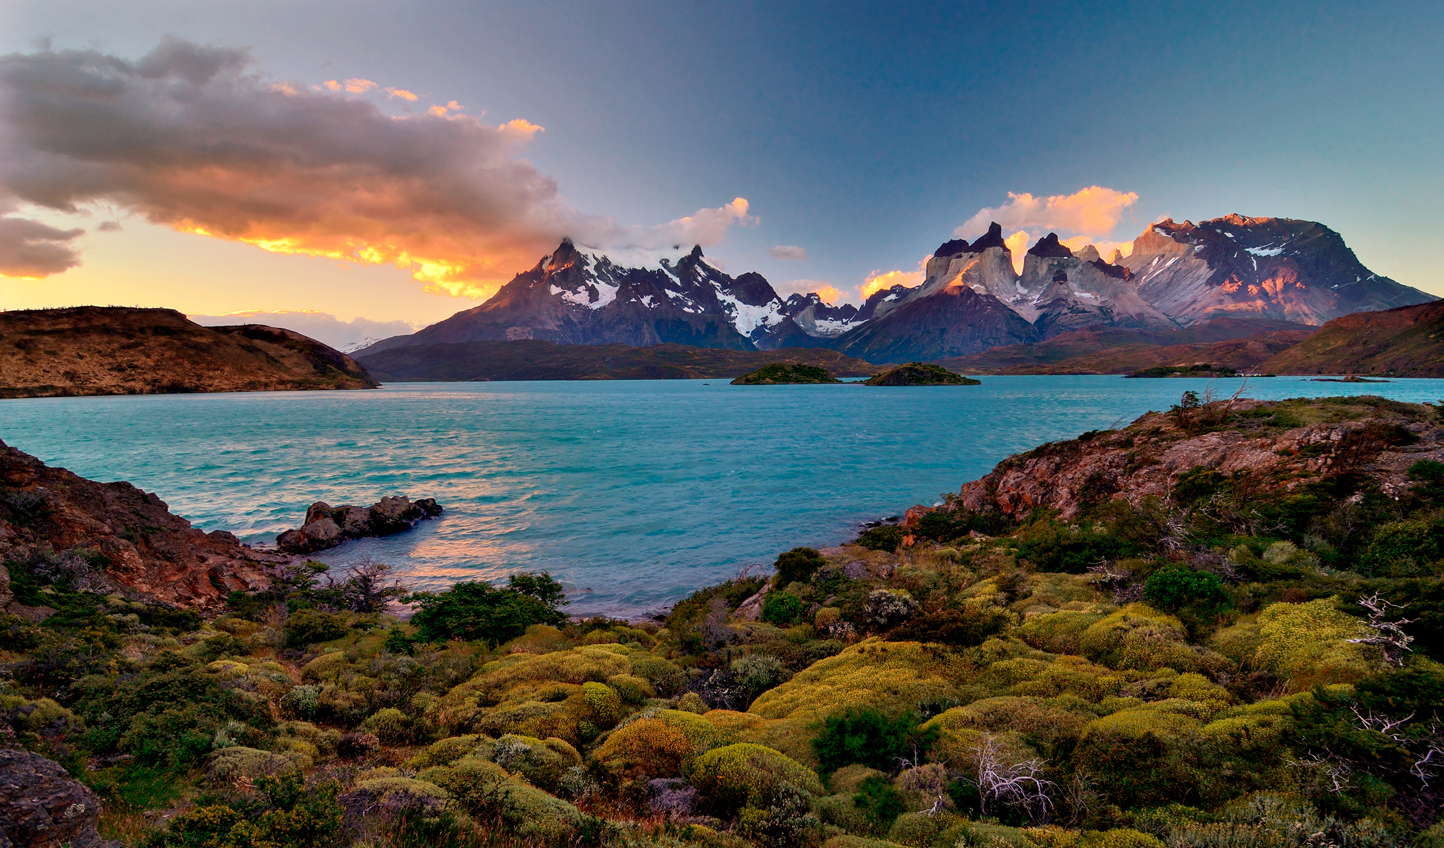 Patagonian sunsets prove hard to beat with fiery skies lighting up the jagged mountainscapes